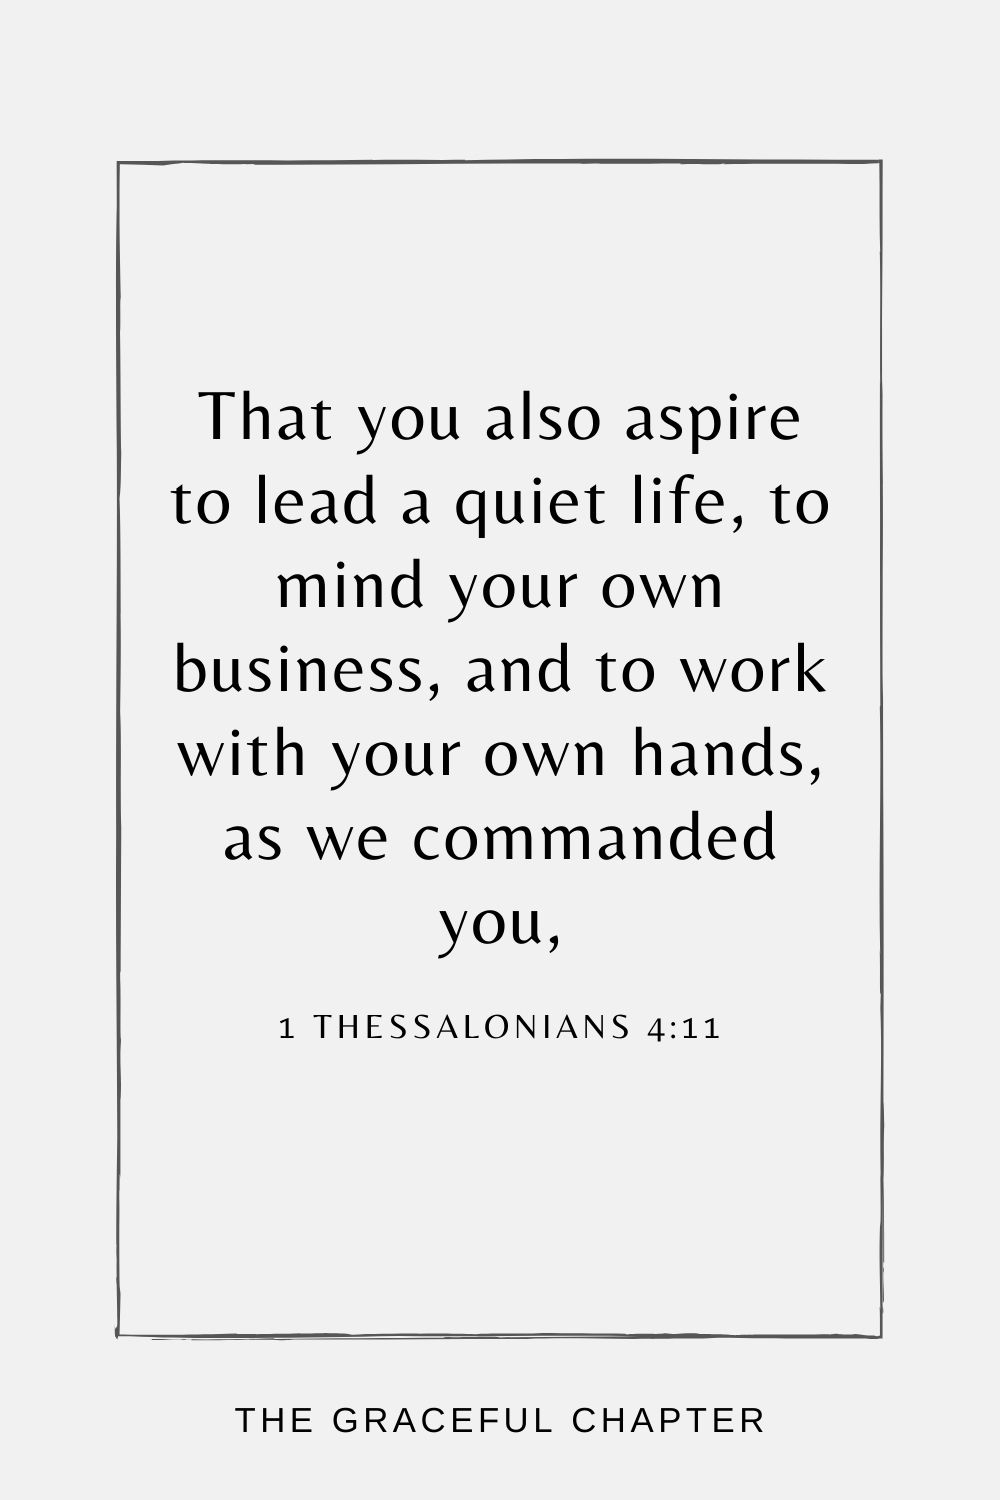 That you also aspire to lead a quiet life, to mind your own business, and to work with your own hands, as we commanded you, 1 Thessalonians 4:11